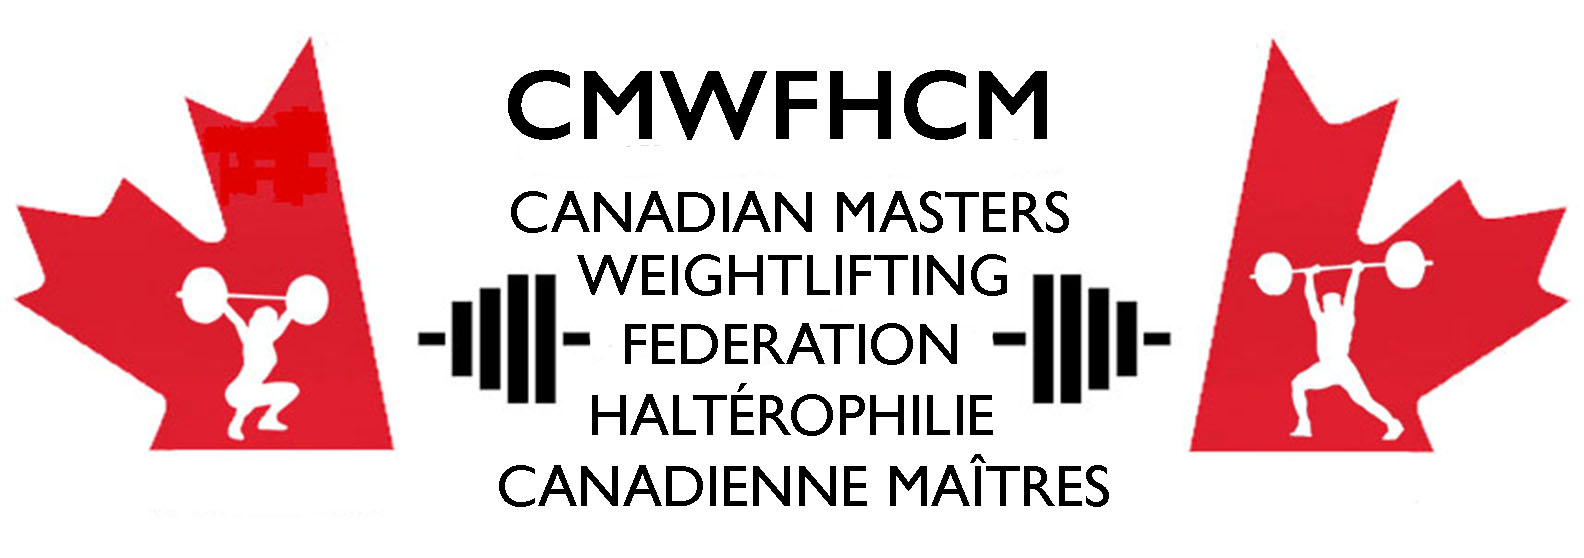 CMWFHCM light